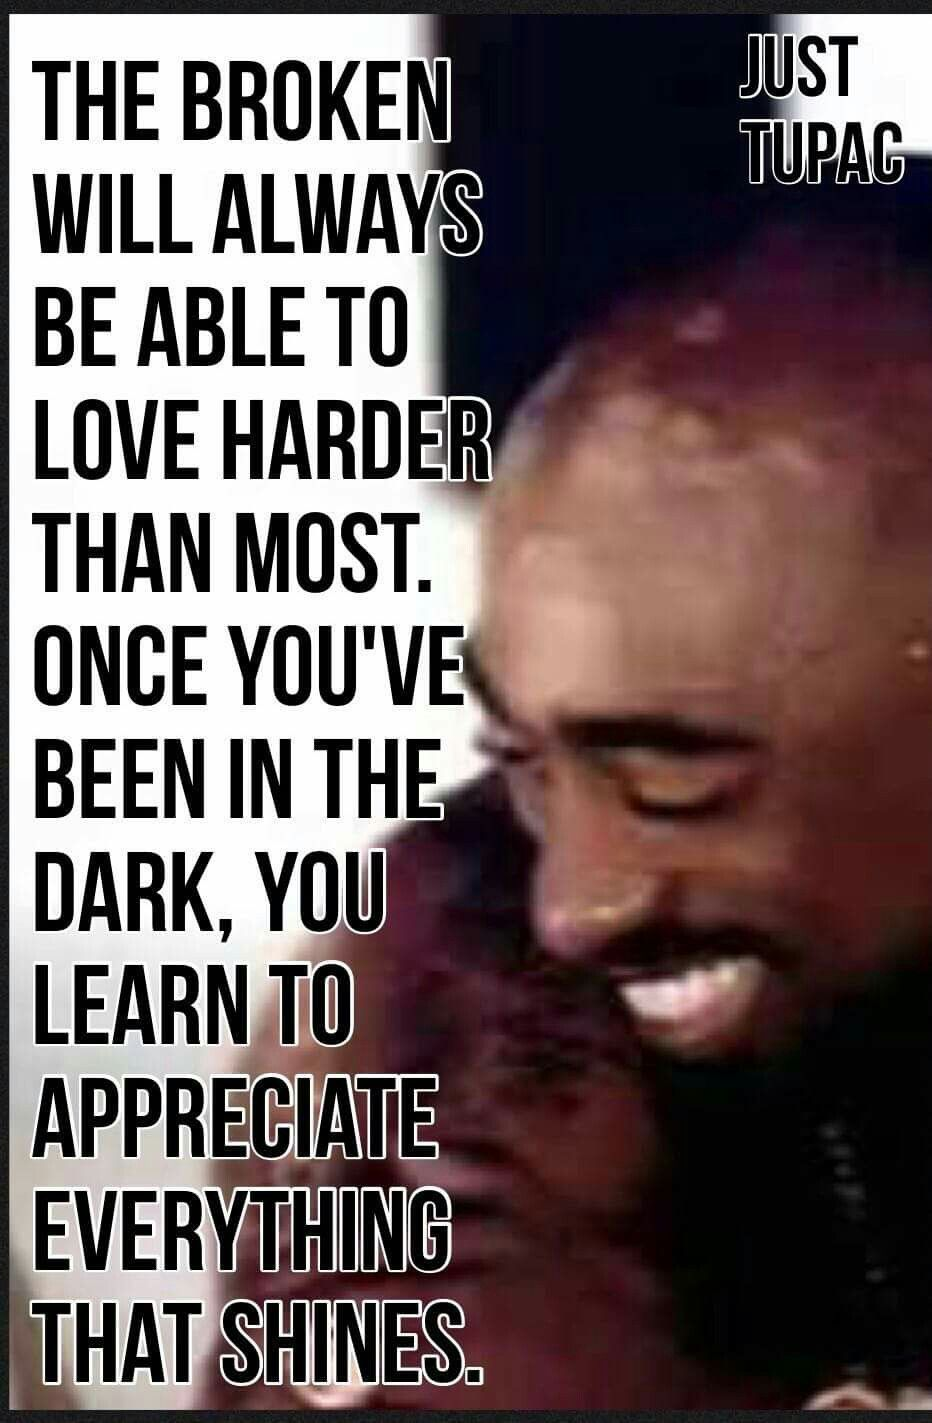 2Pac Quotes Tupac Knew All  Words I Live By Pinterest  2Pac 2Pac Quotes